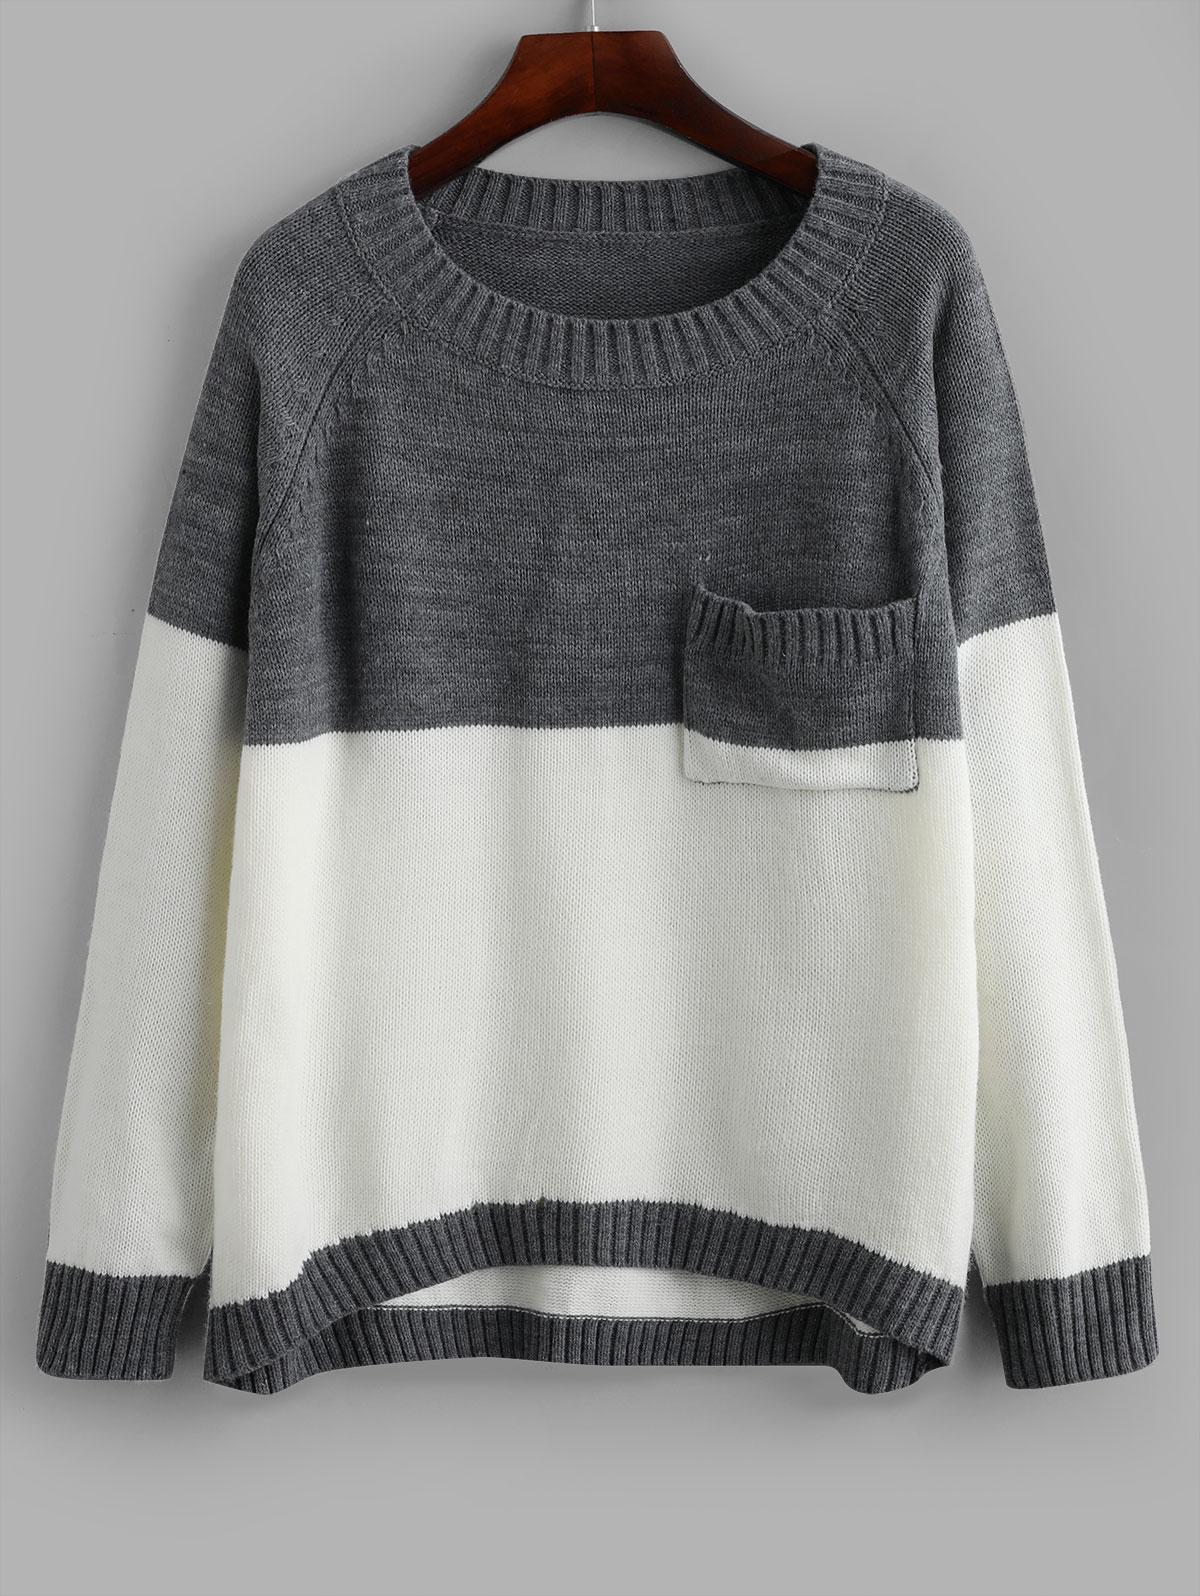 ZAFUL Two Tone High Low Pocket Pullover Sweater фото